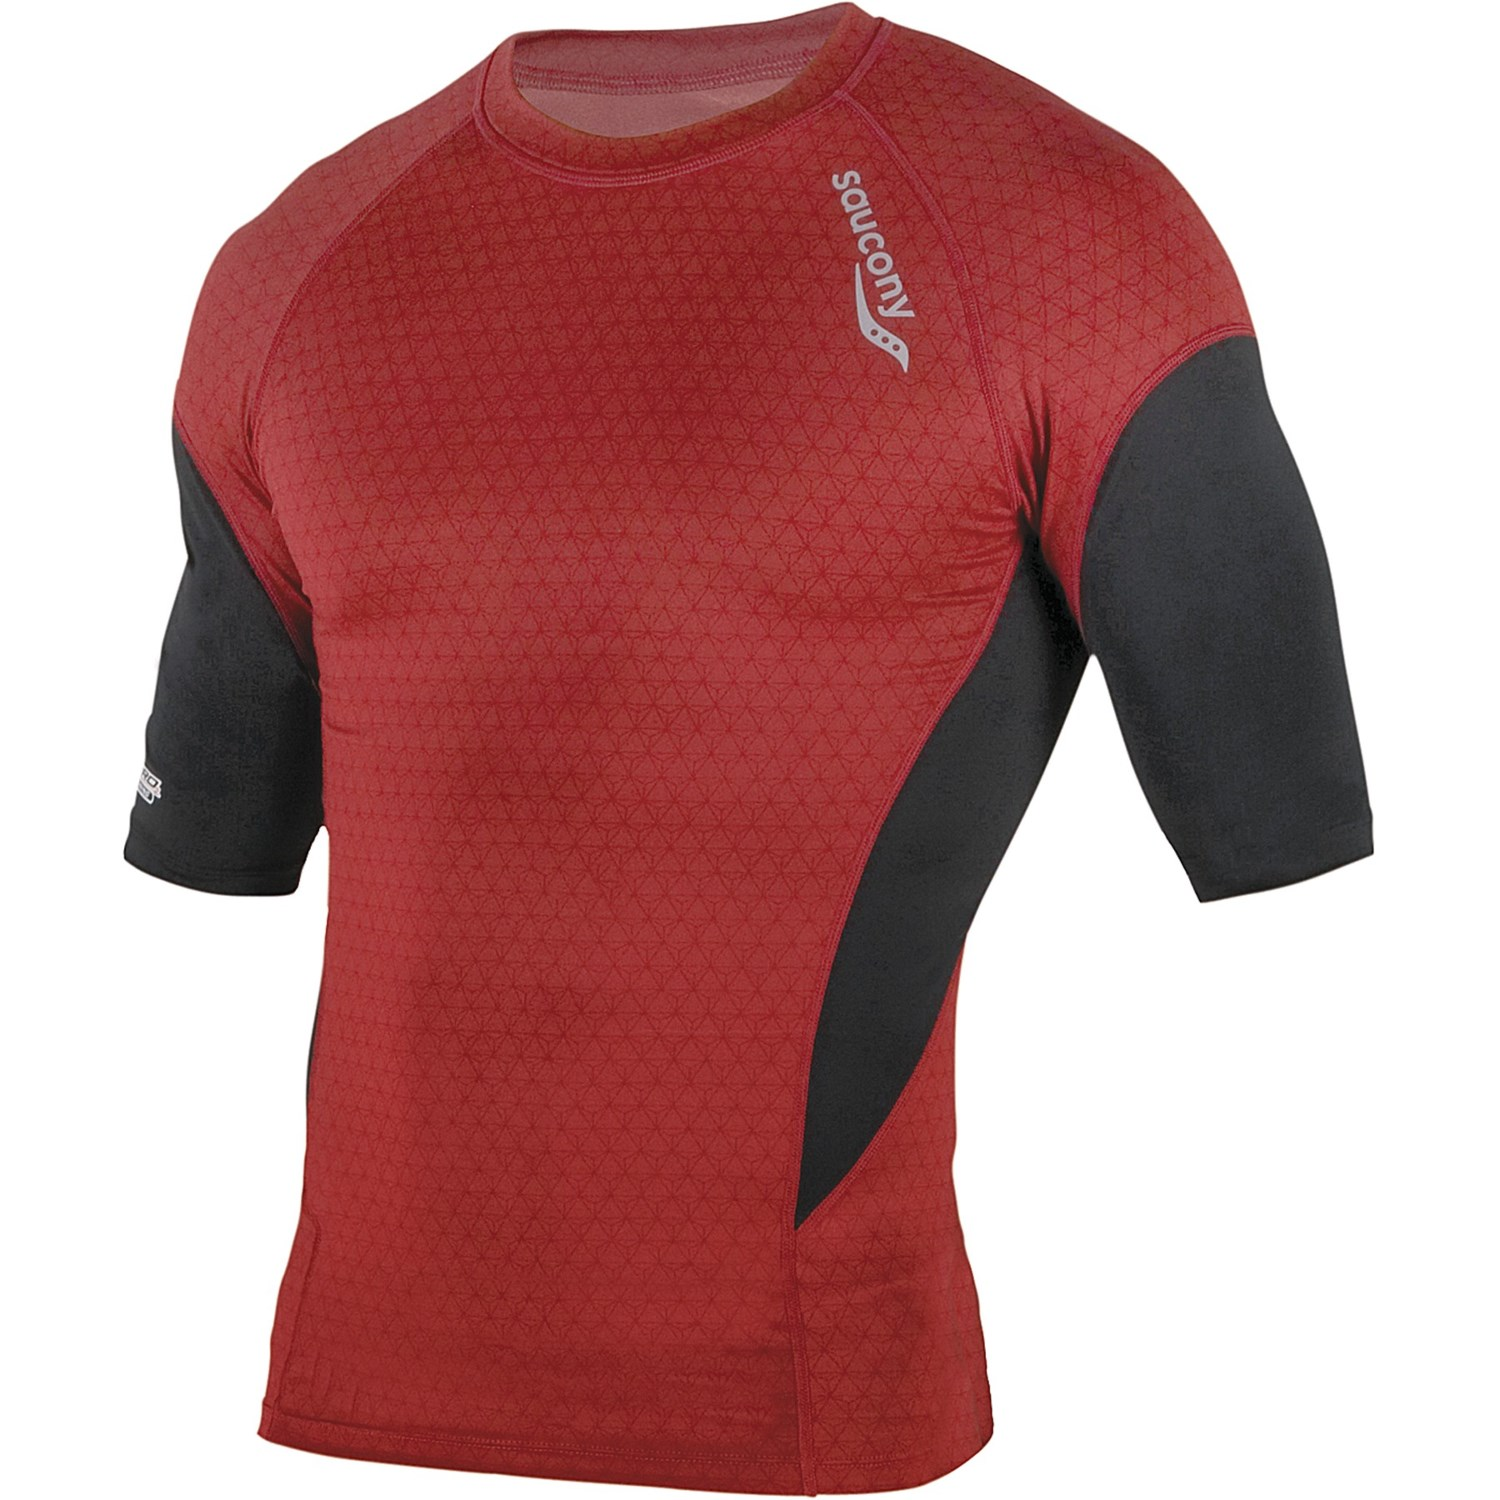 Saucony amp pro2 training compression shirt for men for Compression tee shirts for men